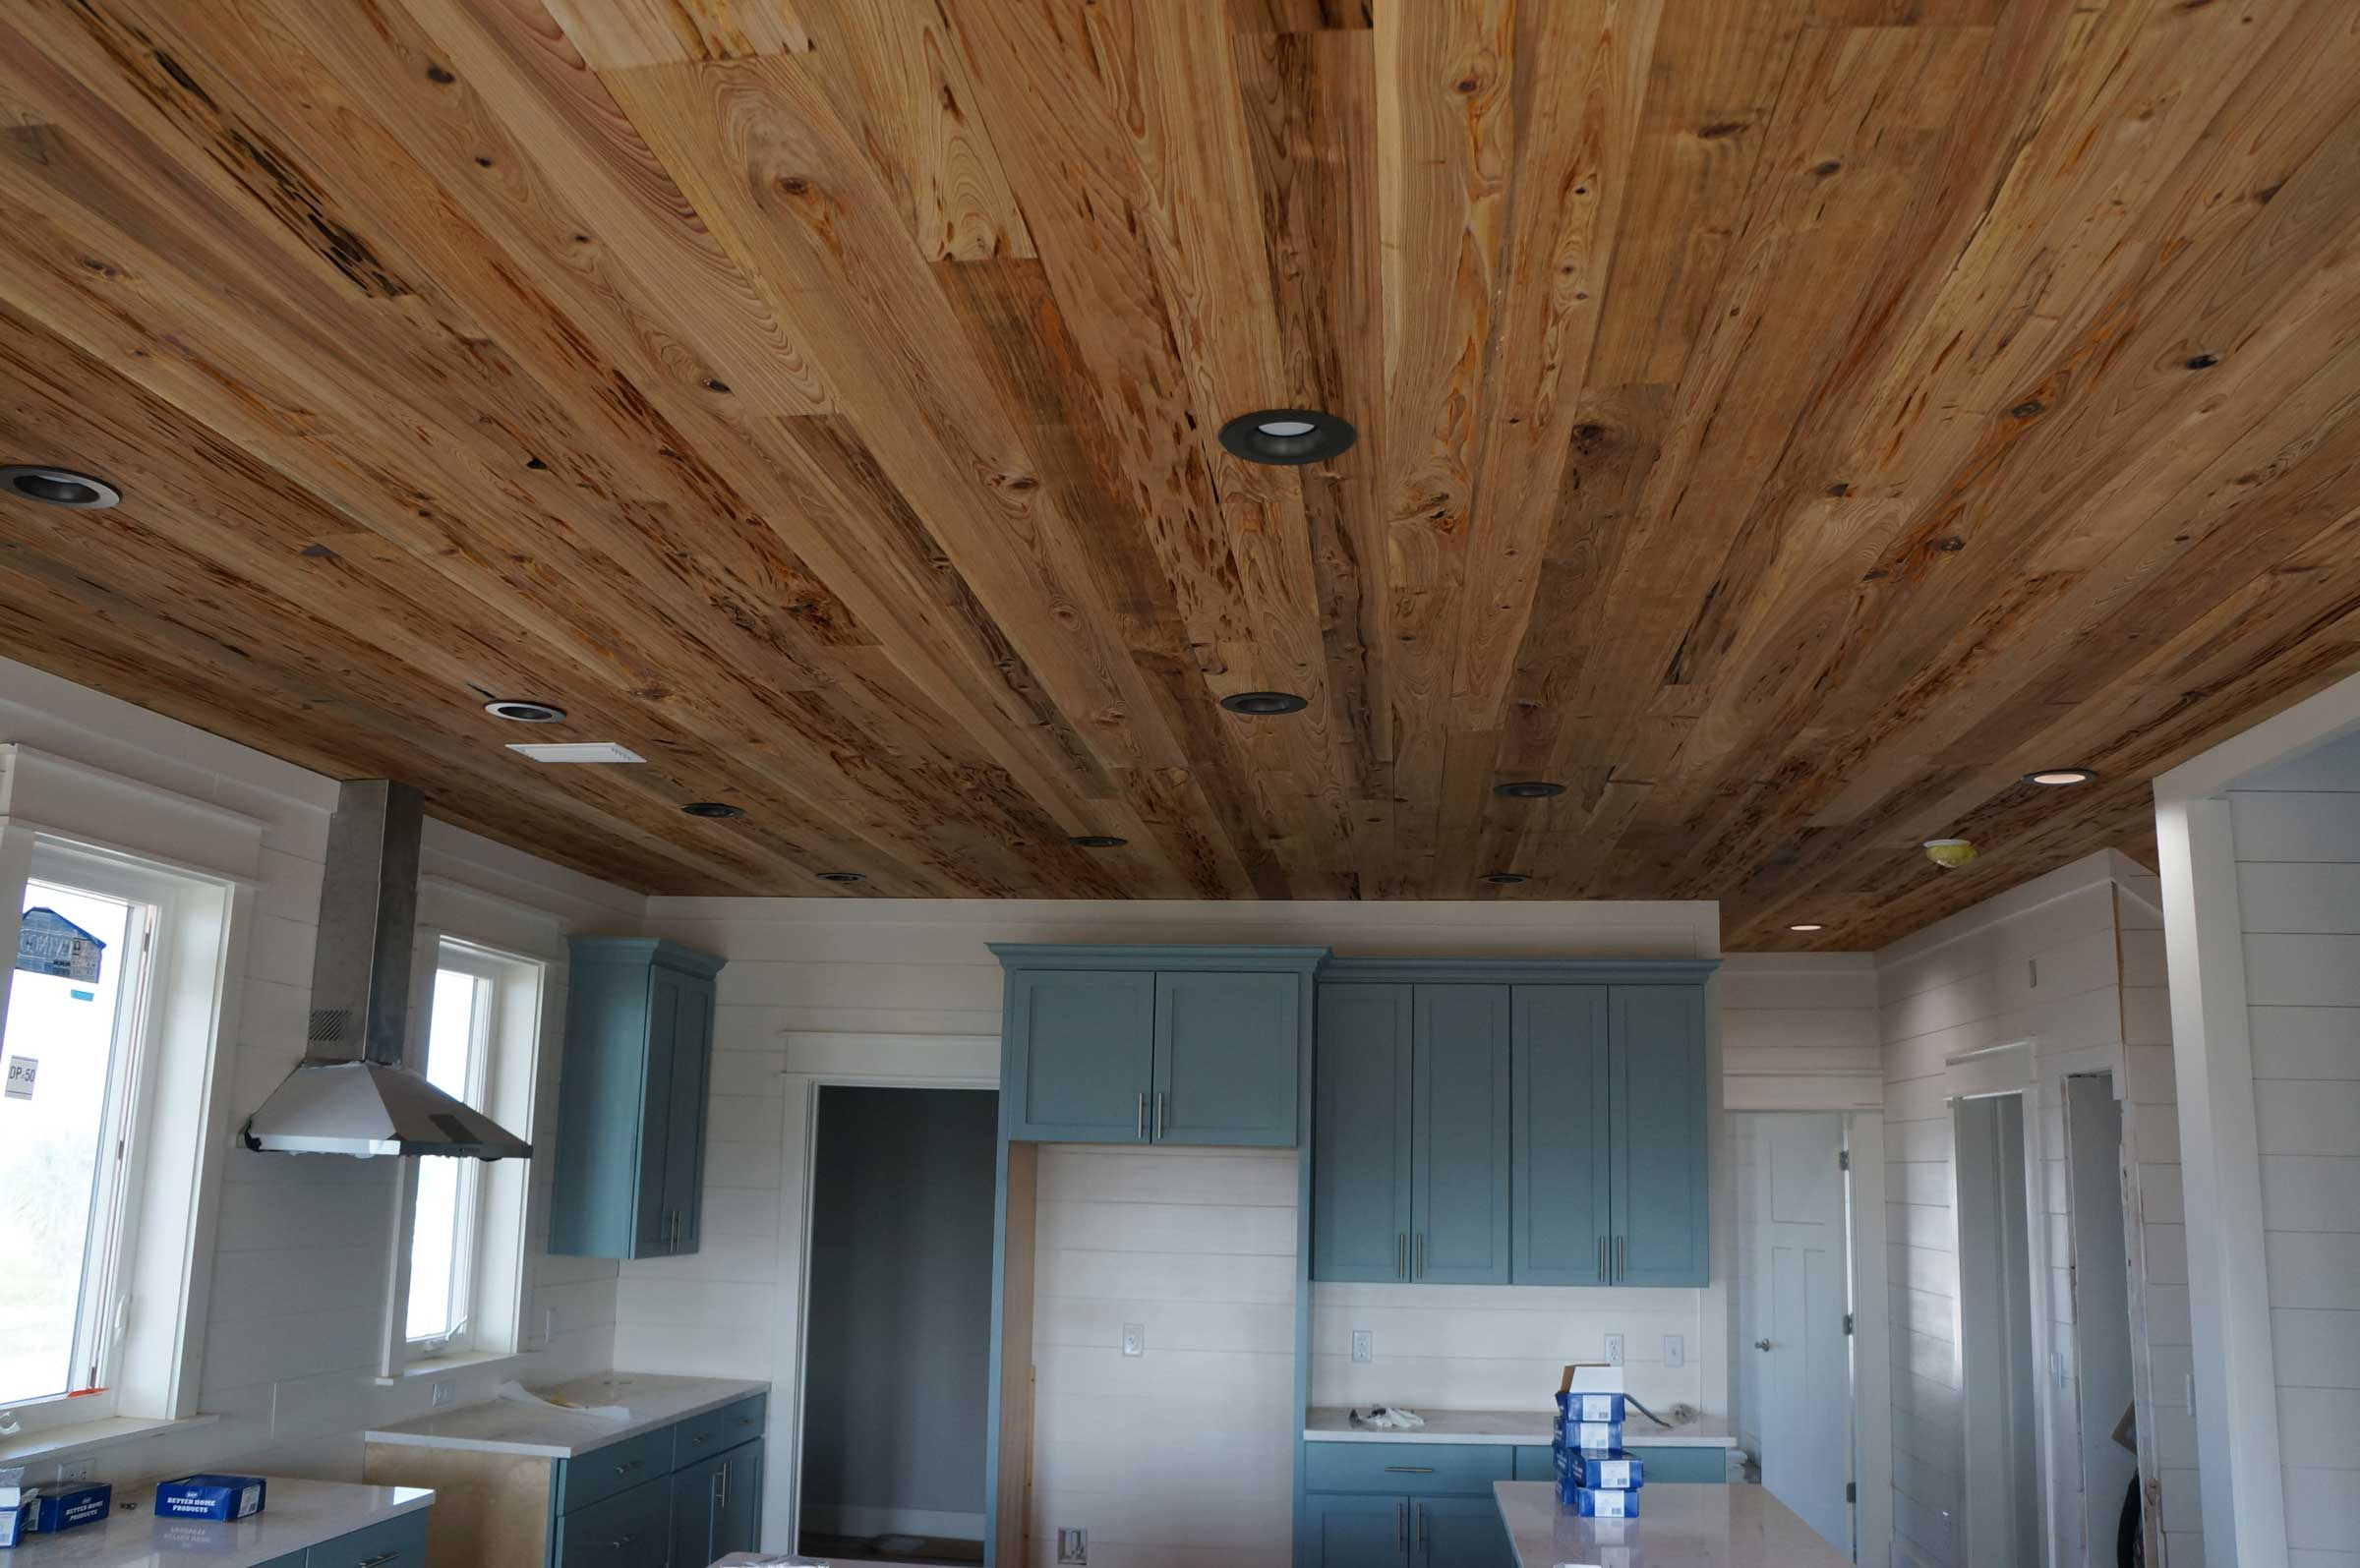 Pot lights in kitchen with unique wood plank ceiling.